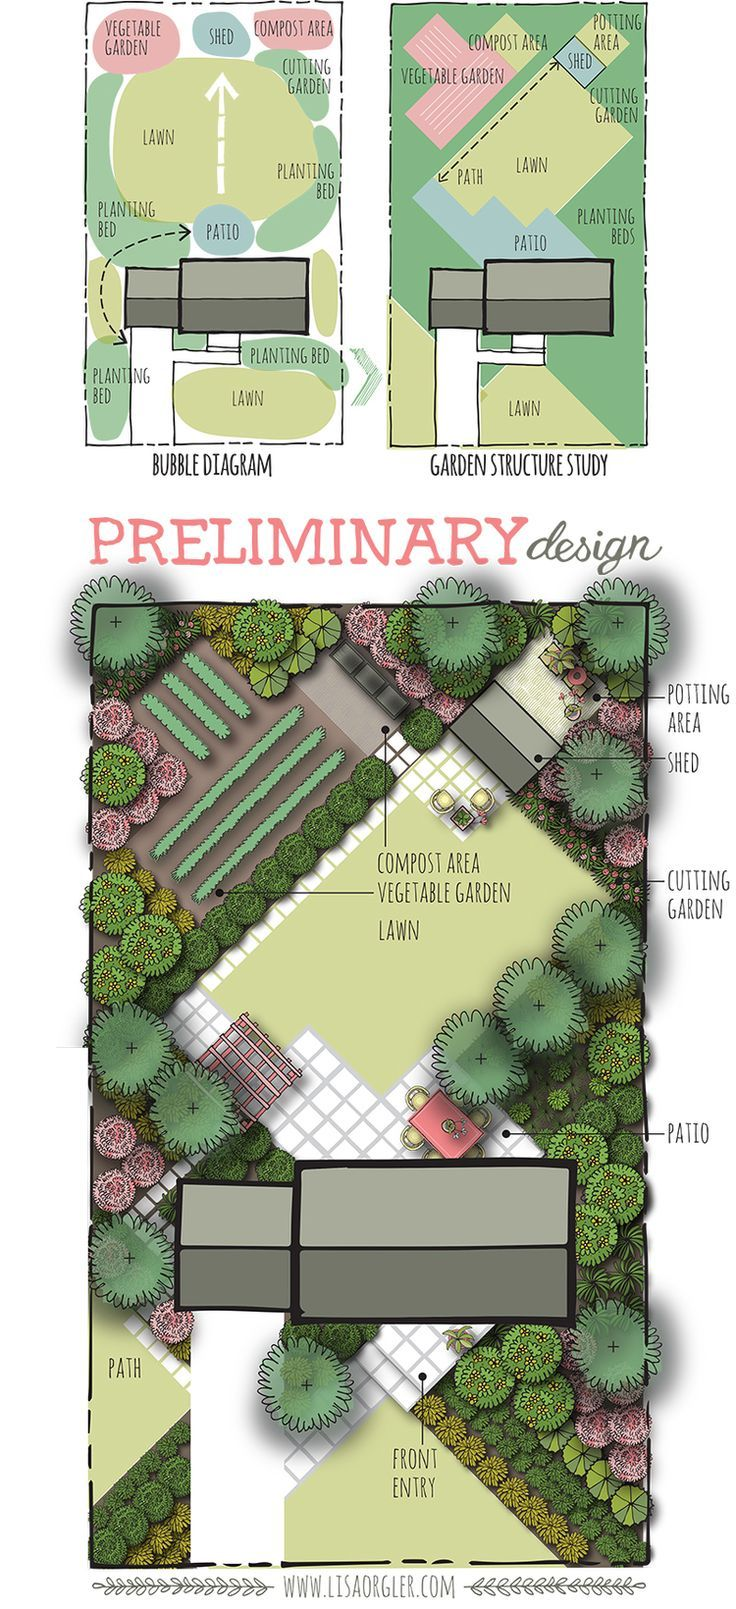 Designing Your Garden: The Preliminary Design Architectural Landscape Design